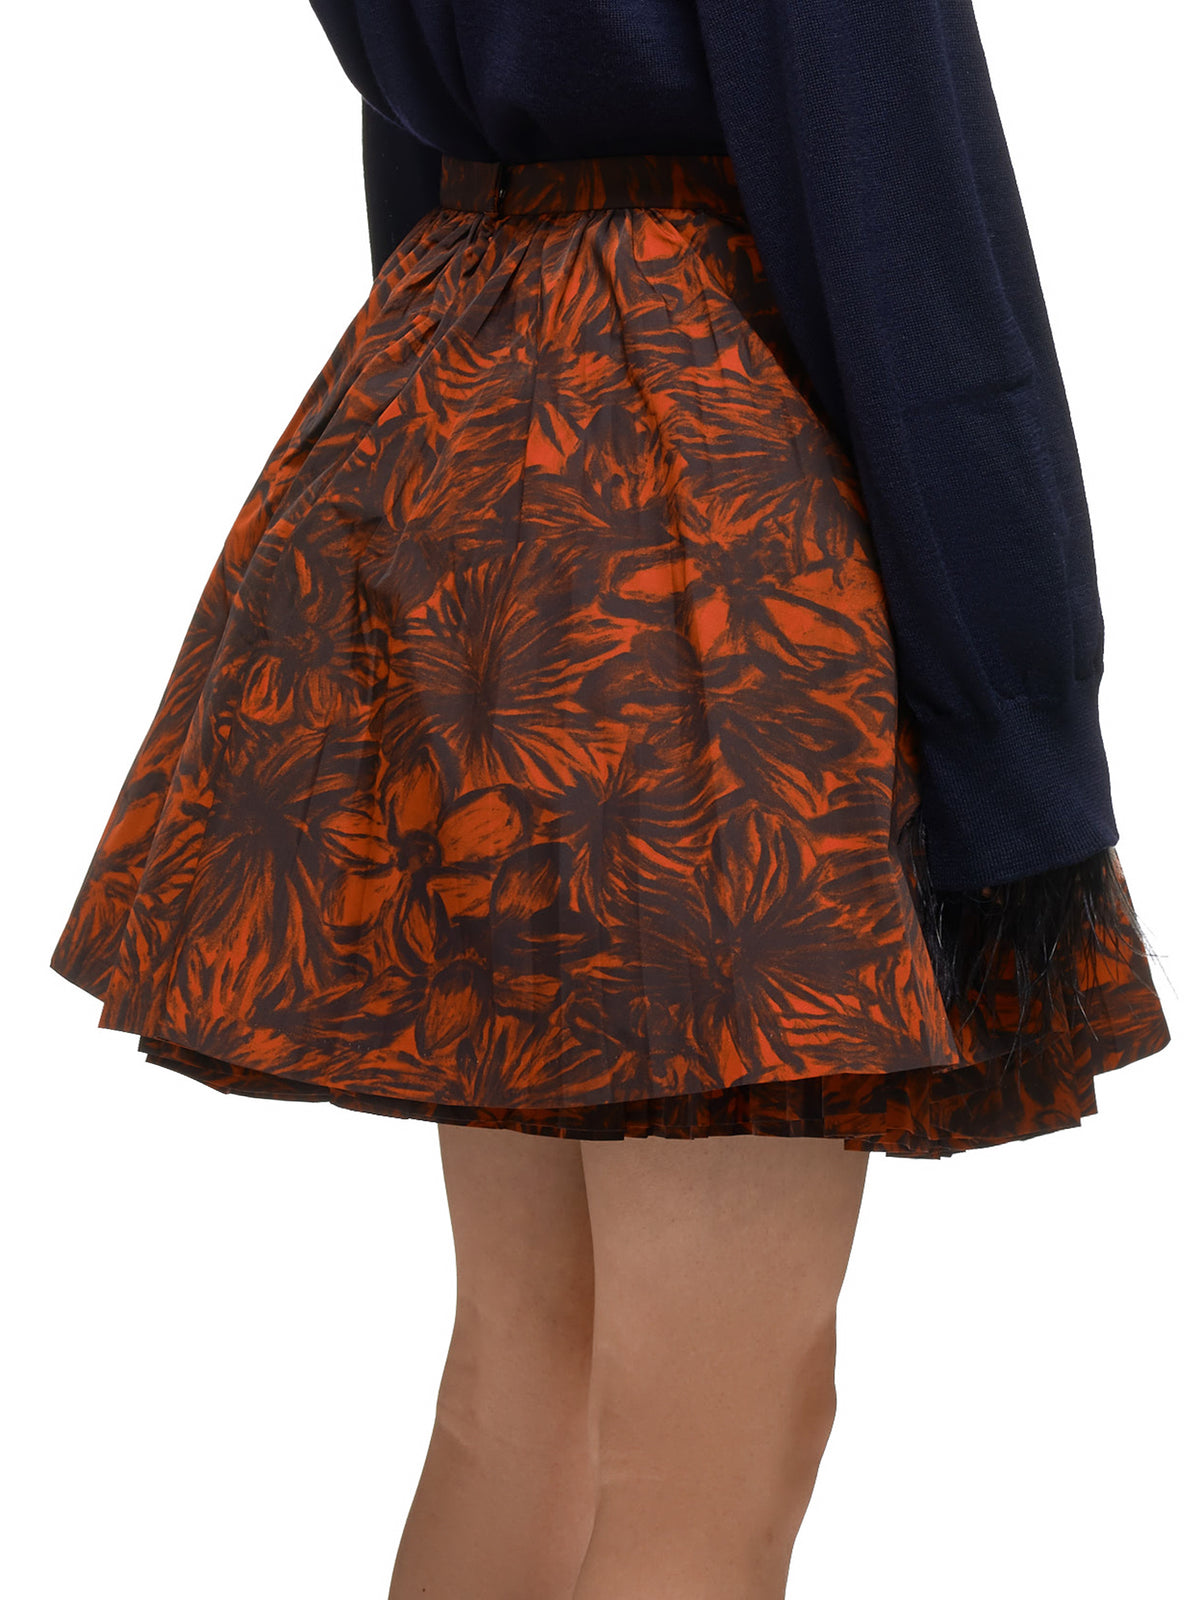 Toga Archives Skirt - Hlorenzo Detail 2